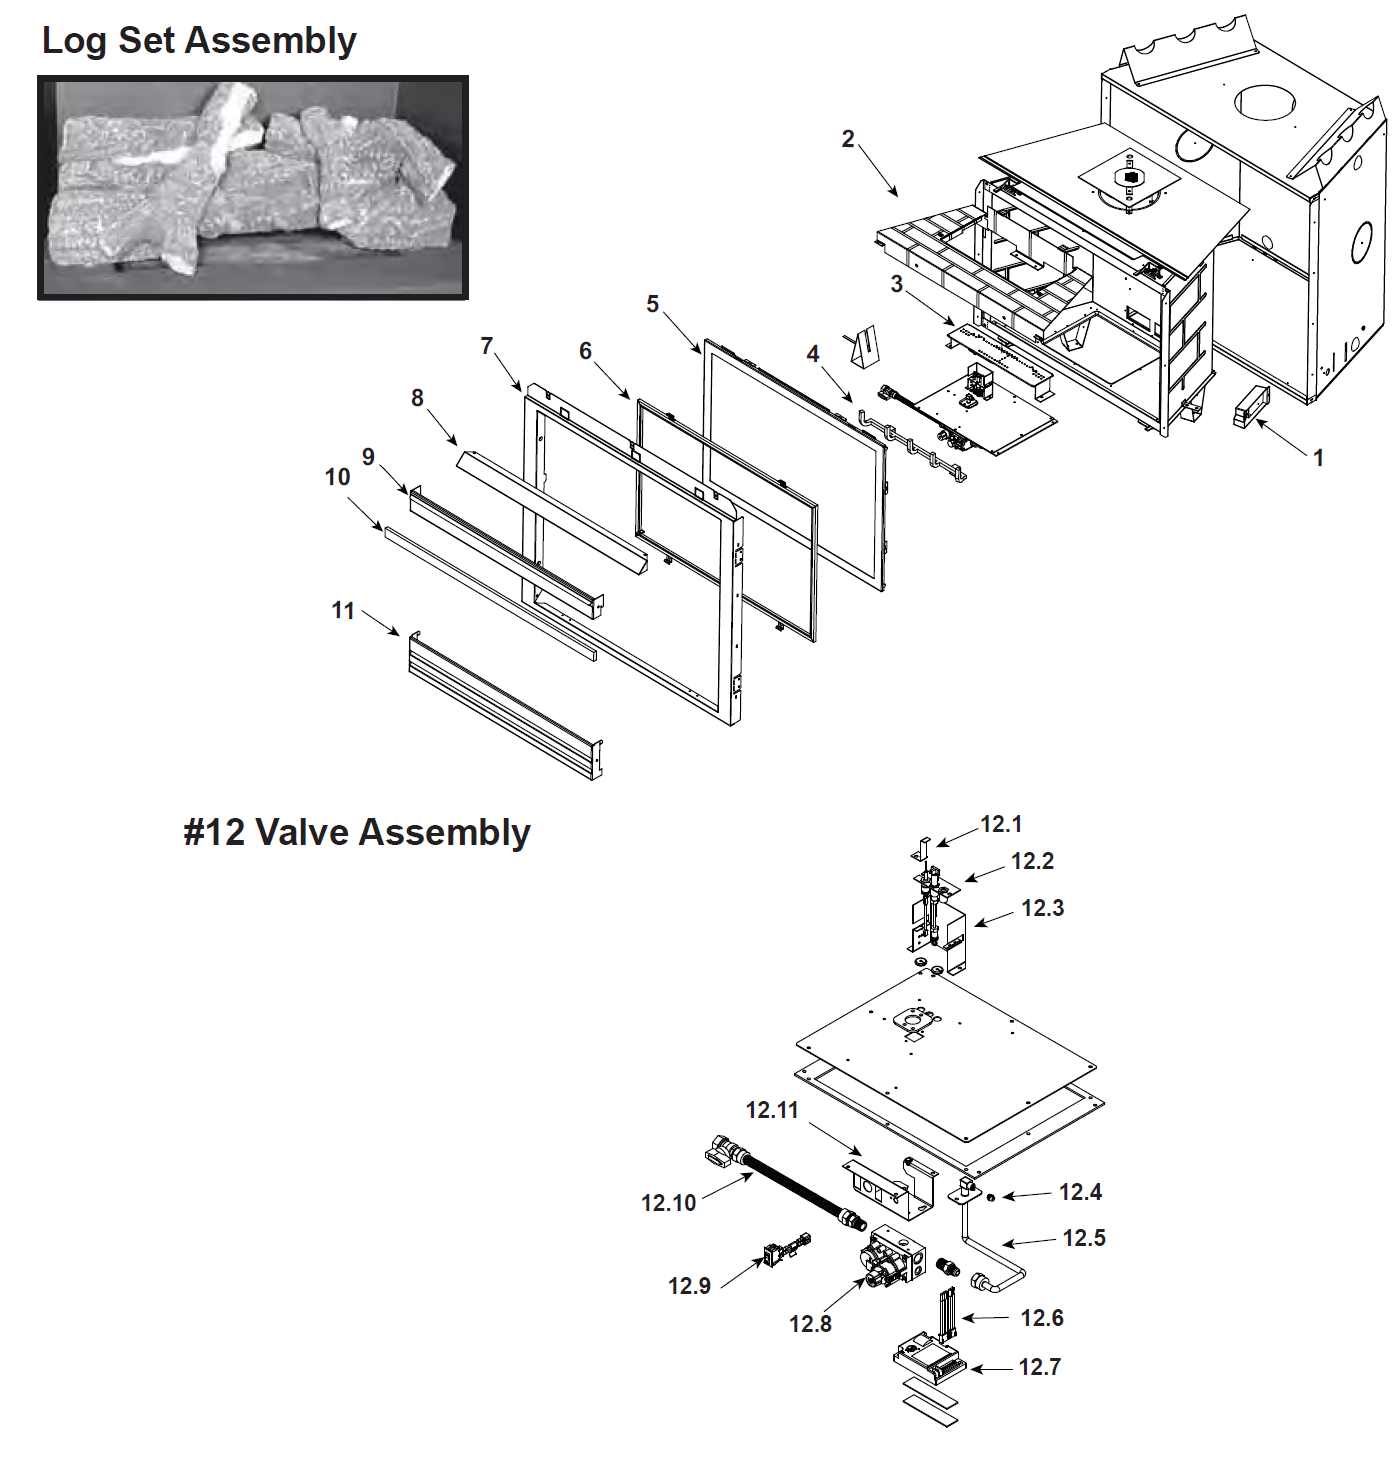 Heat N Glo 6000BE-IPI Parts - Free shipping on orders over $49 Gas Valve Wiring Diagram Ipi on